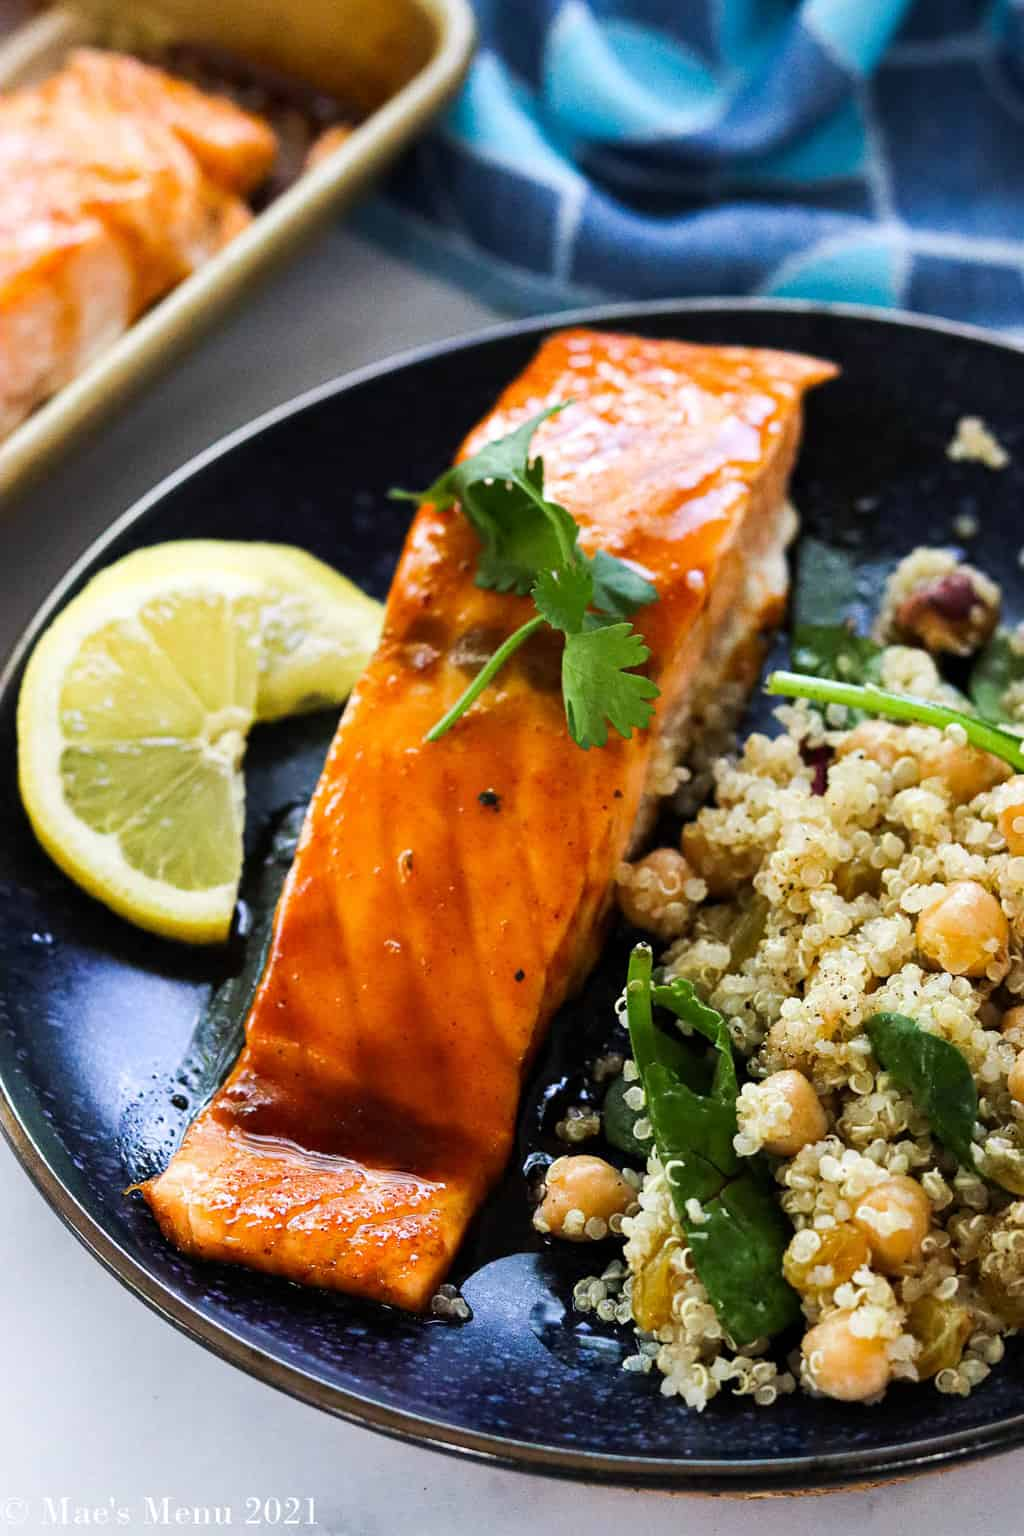 A fillet of bourbon salmon on a blue plate with quinoa salad